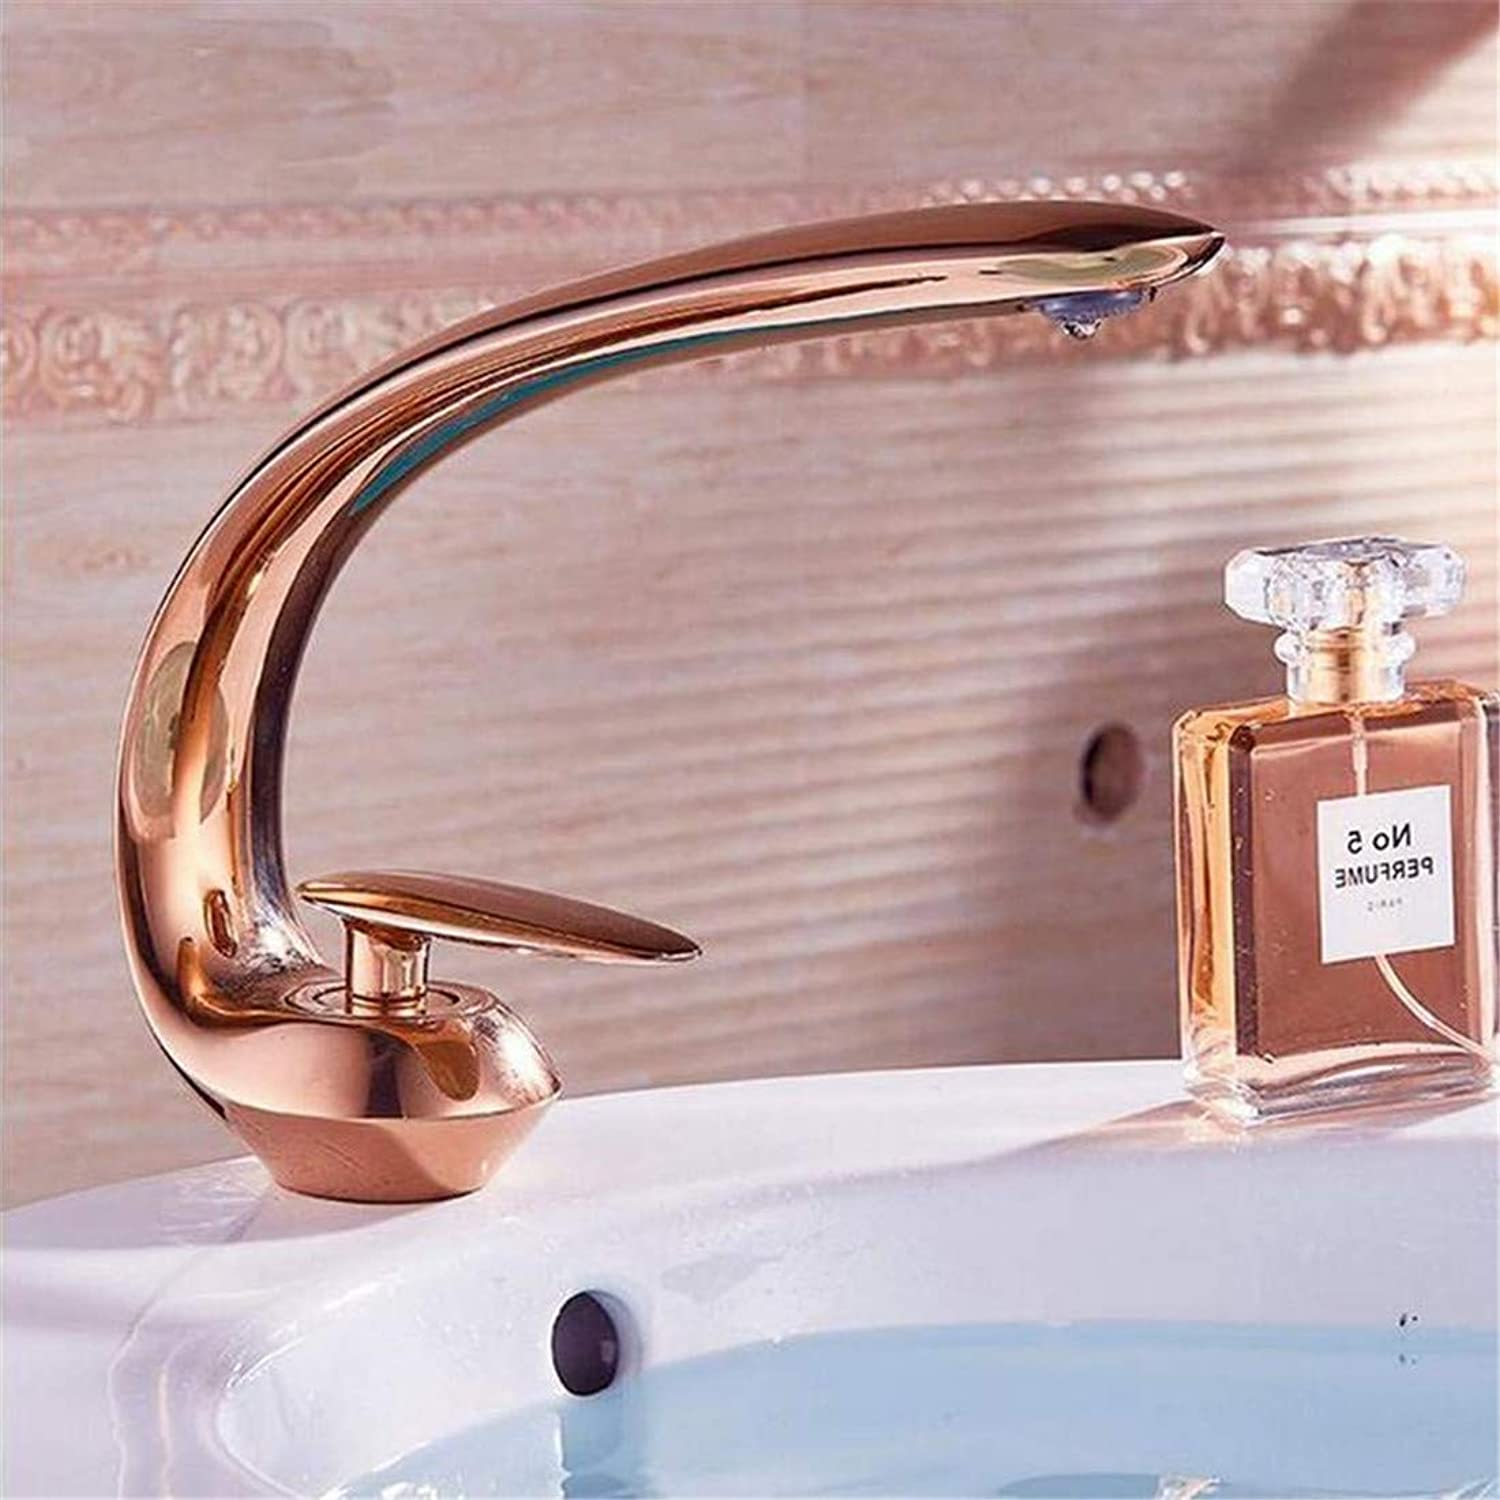 Retro Tap Modern Luxury Vintage Platingcold Dark Retro Art Basin Faucet Single Hole Leading gold Tap